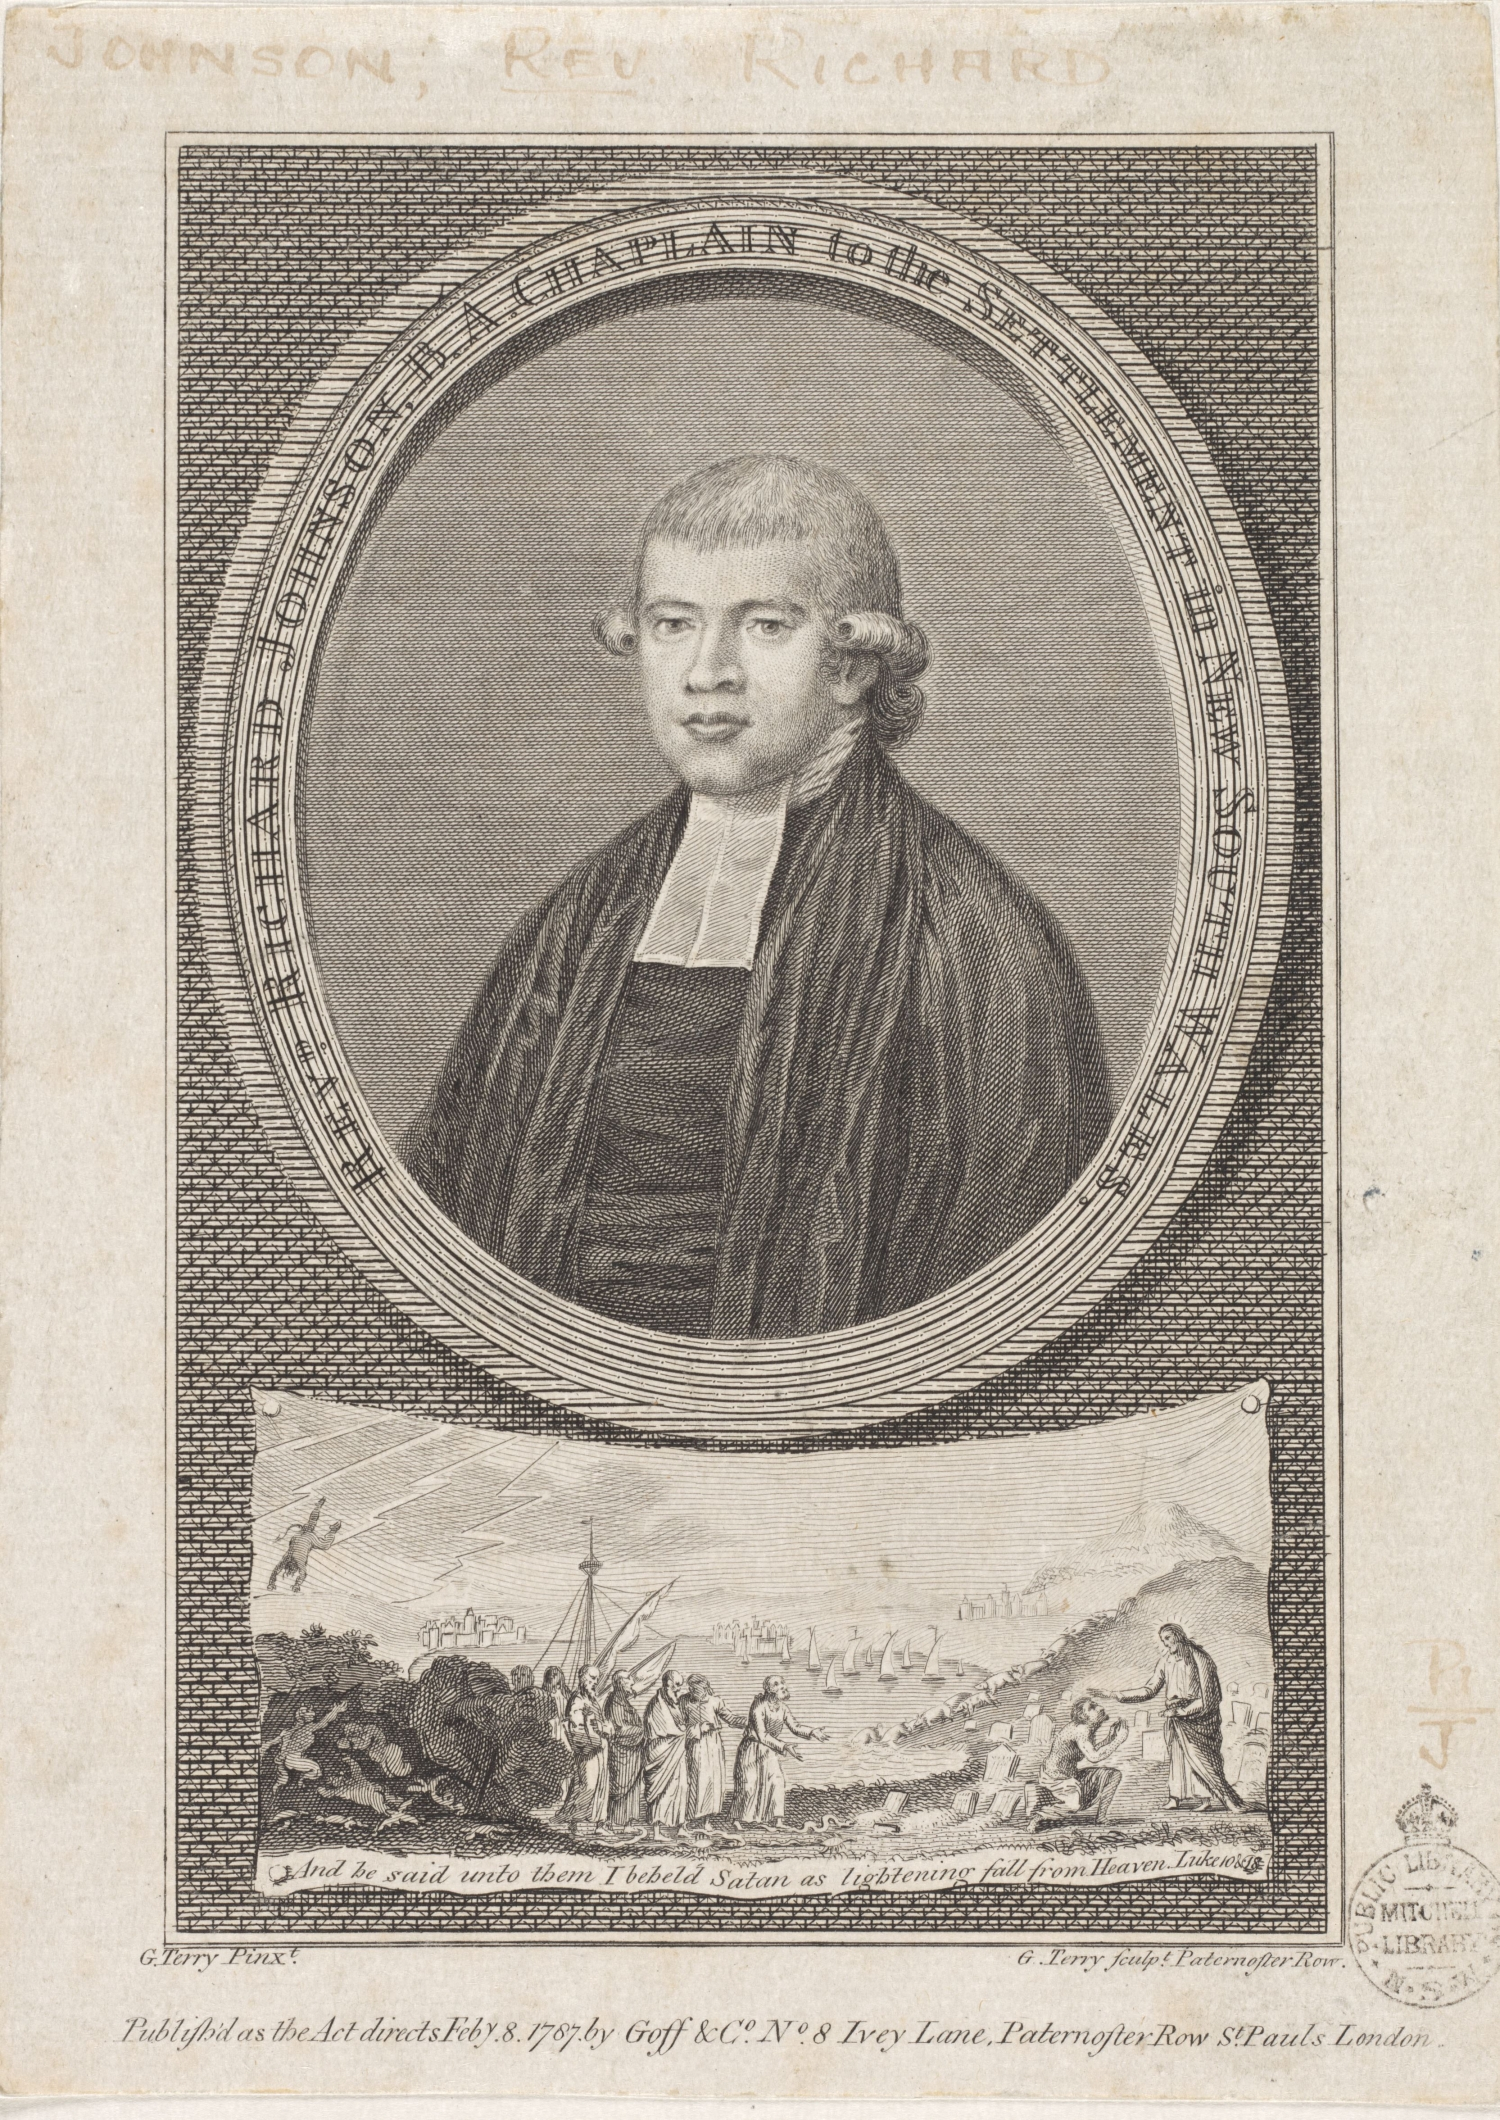 Portrait of Reverend Richard Johnson, first chaplain to the settlement of New South Wales.